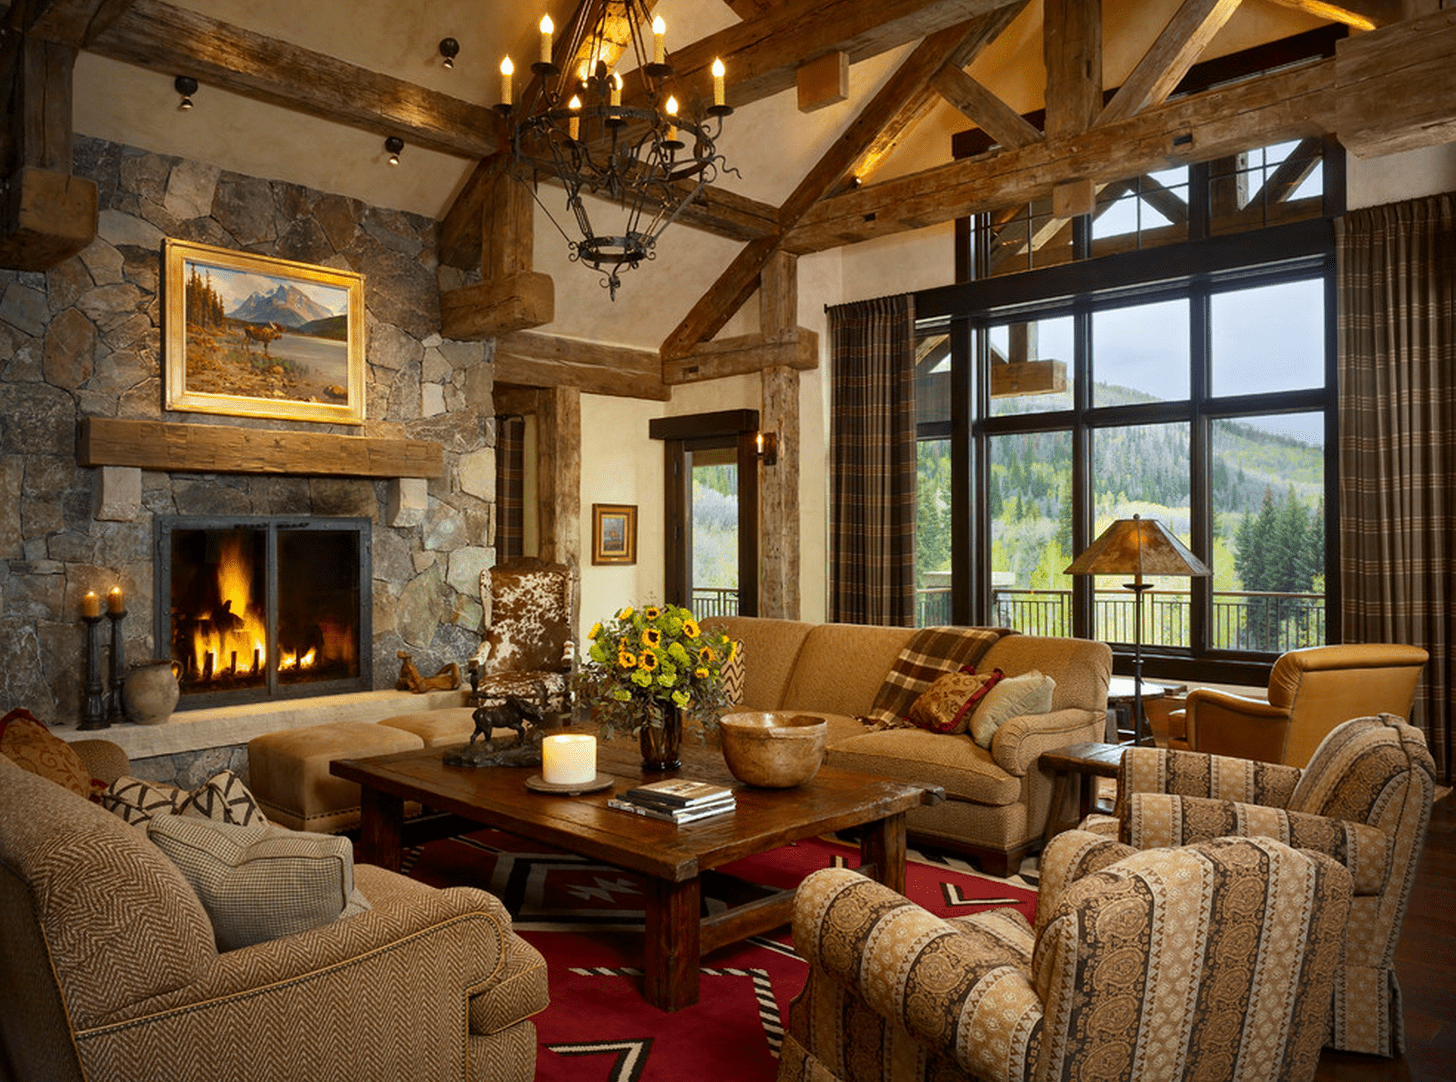 21 cozy living room design ideas - Decorating Ideas For Living Rooms With Fireplaces